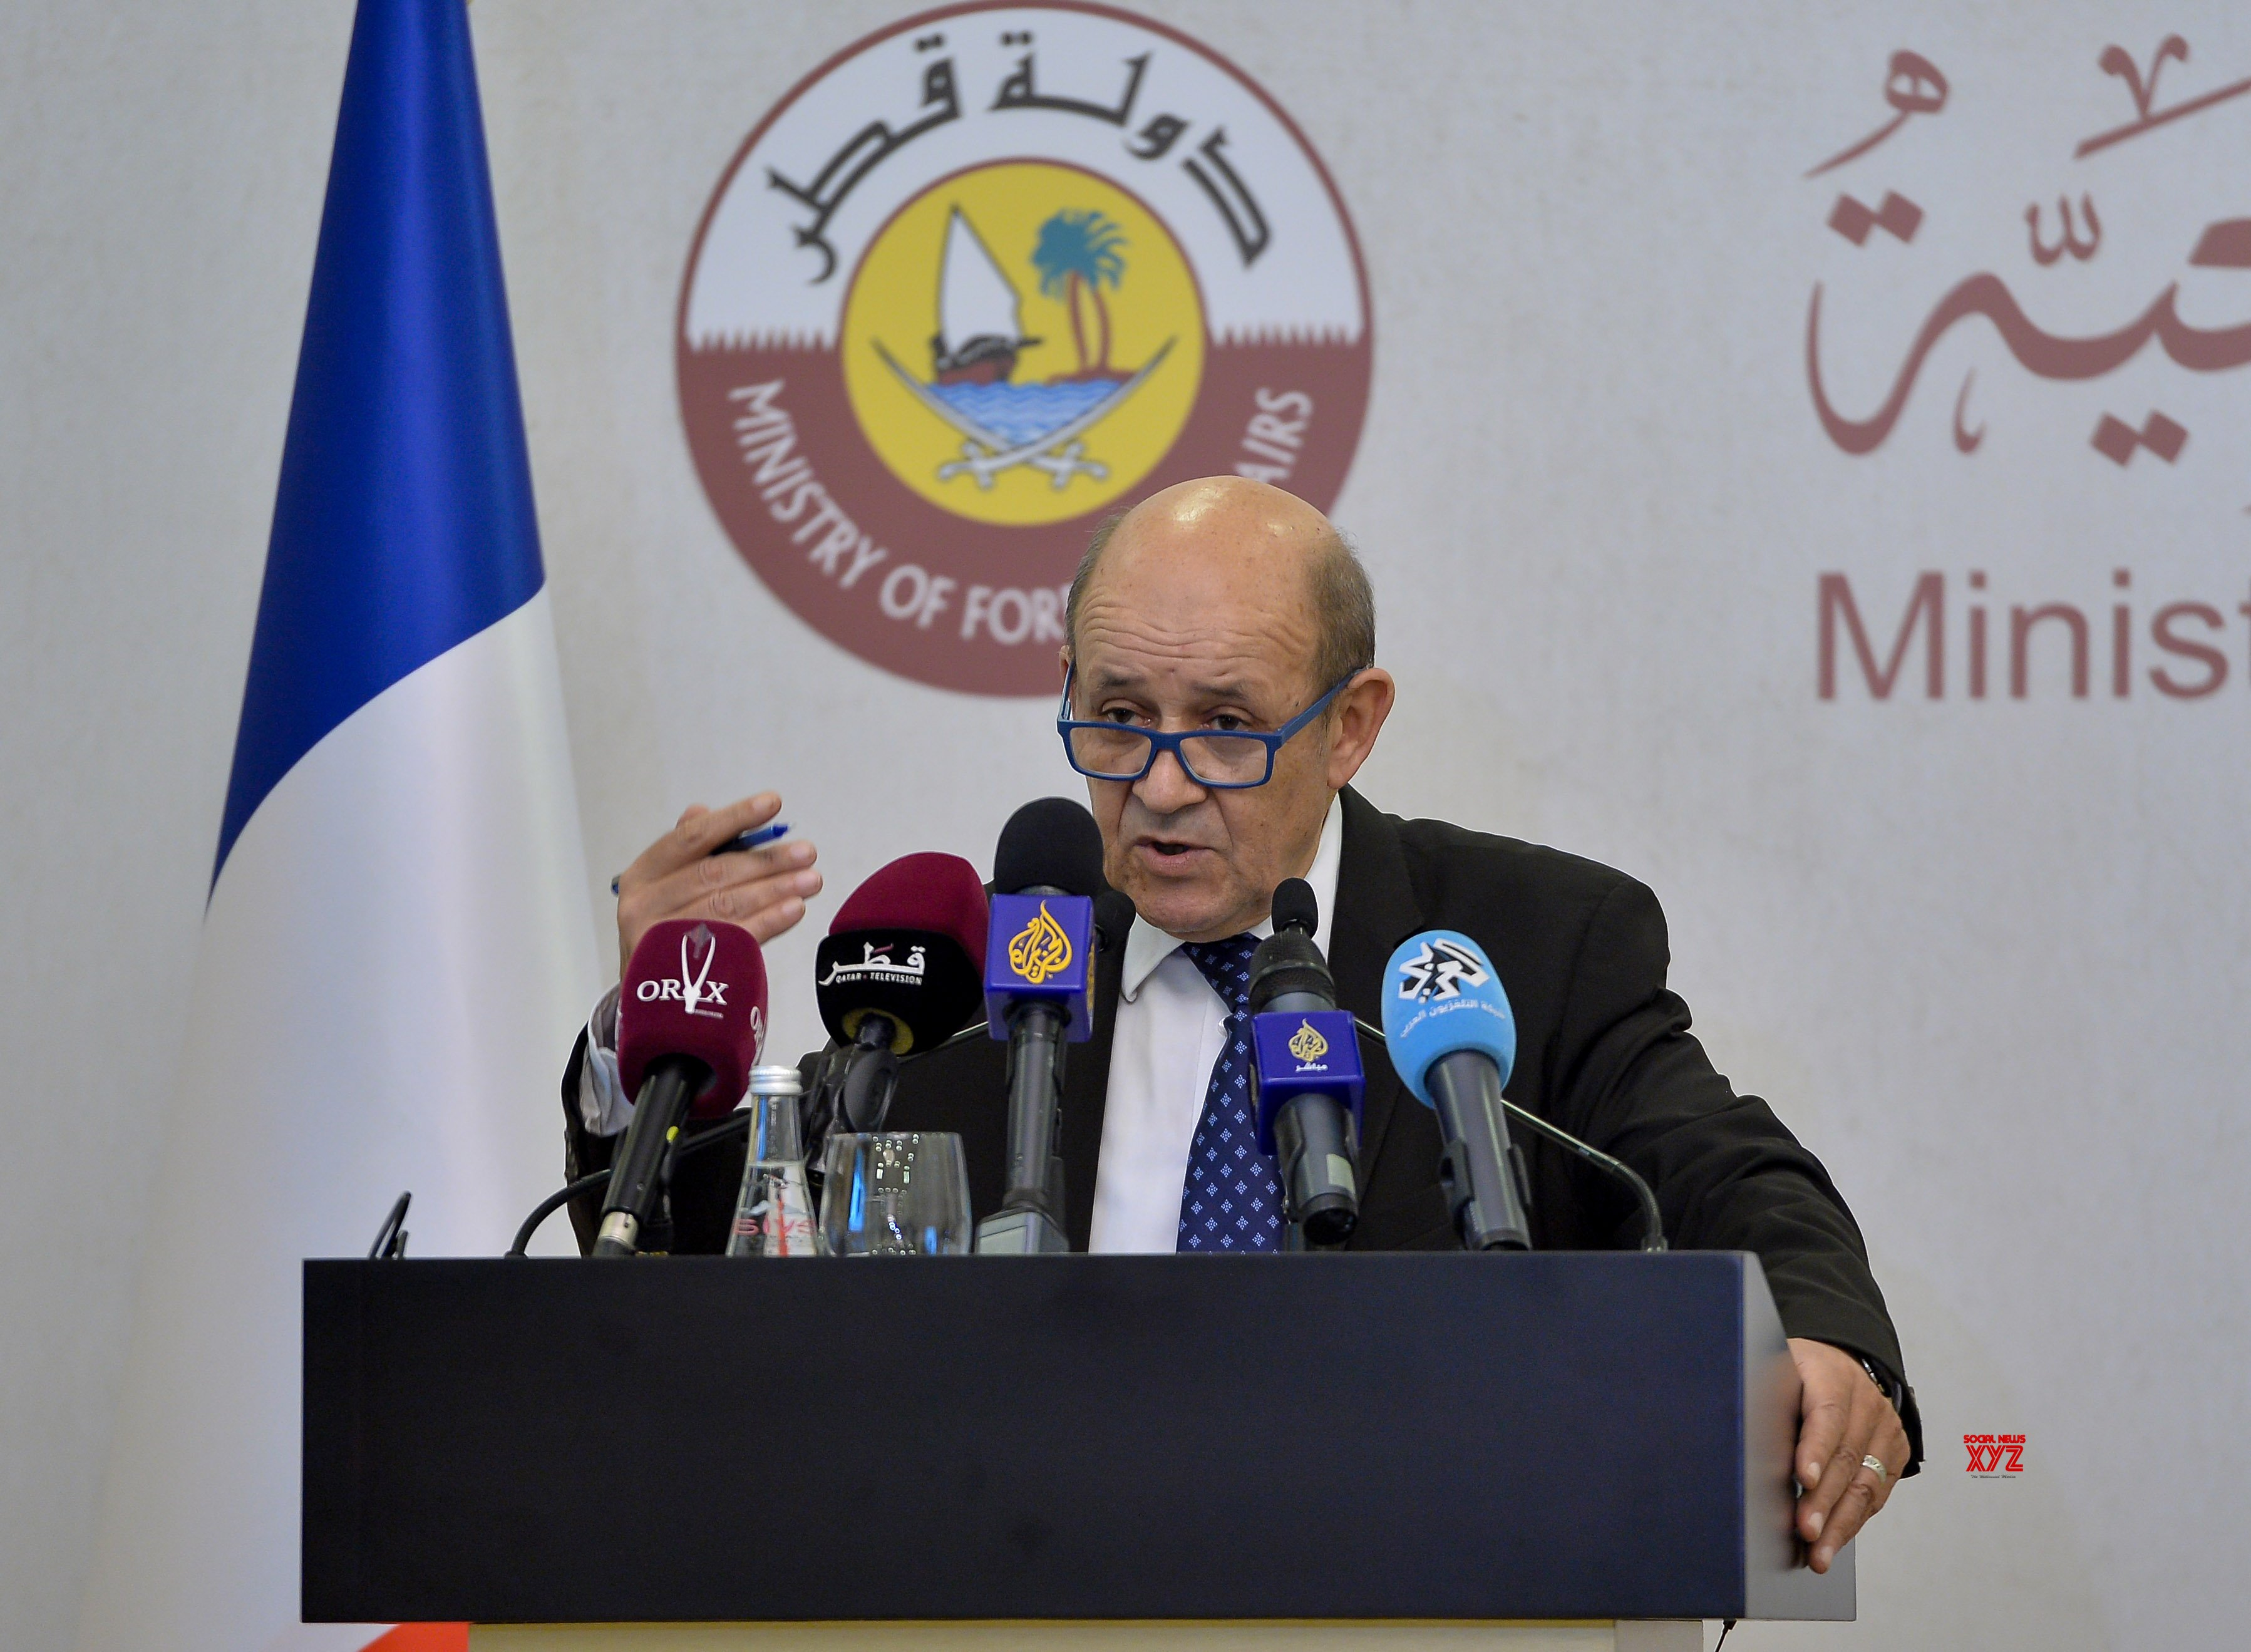 QATAR - DOHA - FM - FRANCE - FM - PRESS CONFERENCE #Gallery